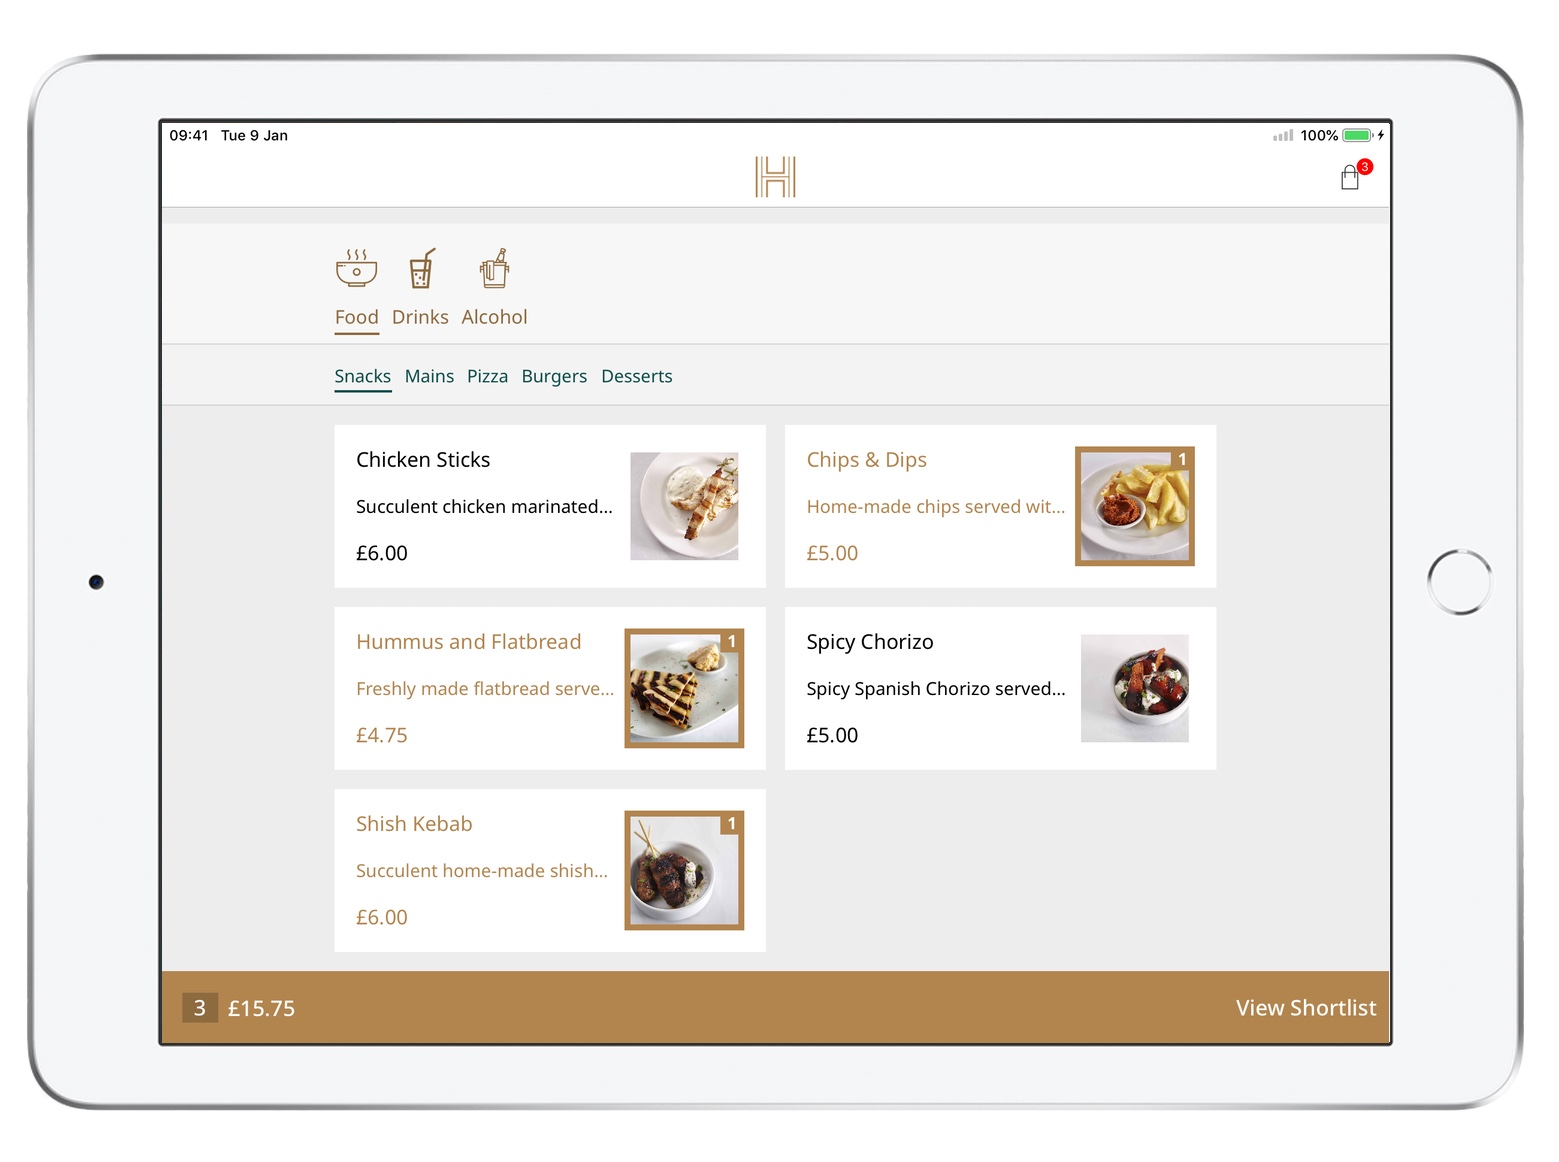 Shortlist - When 'Shortlist' is enabled, guests can add Items they want to the Shortlist without ordering, instead, your staff can assist as they would do with a traditional paper menu. A great way to keep a record of what your guest wants if you don't want to connect iRiS Guest Table to POS.